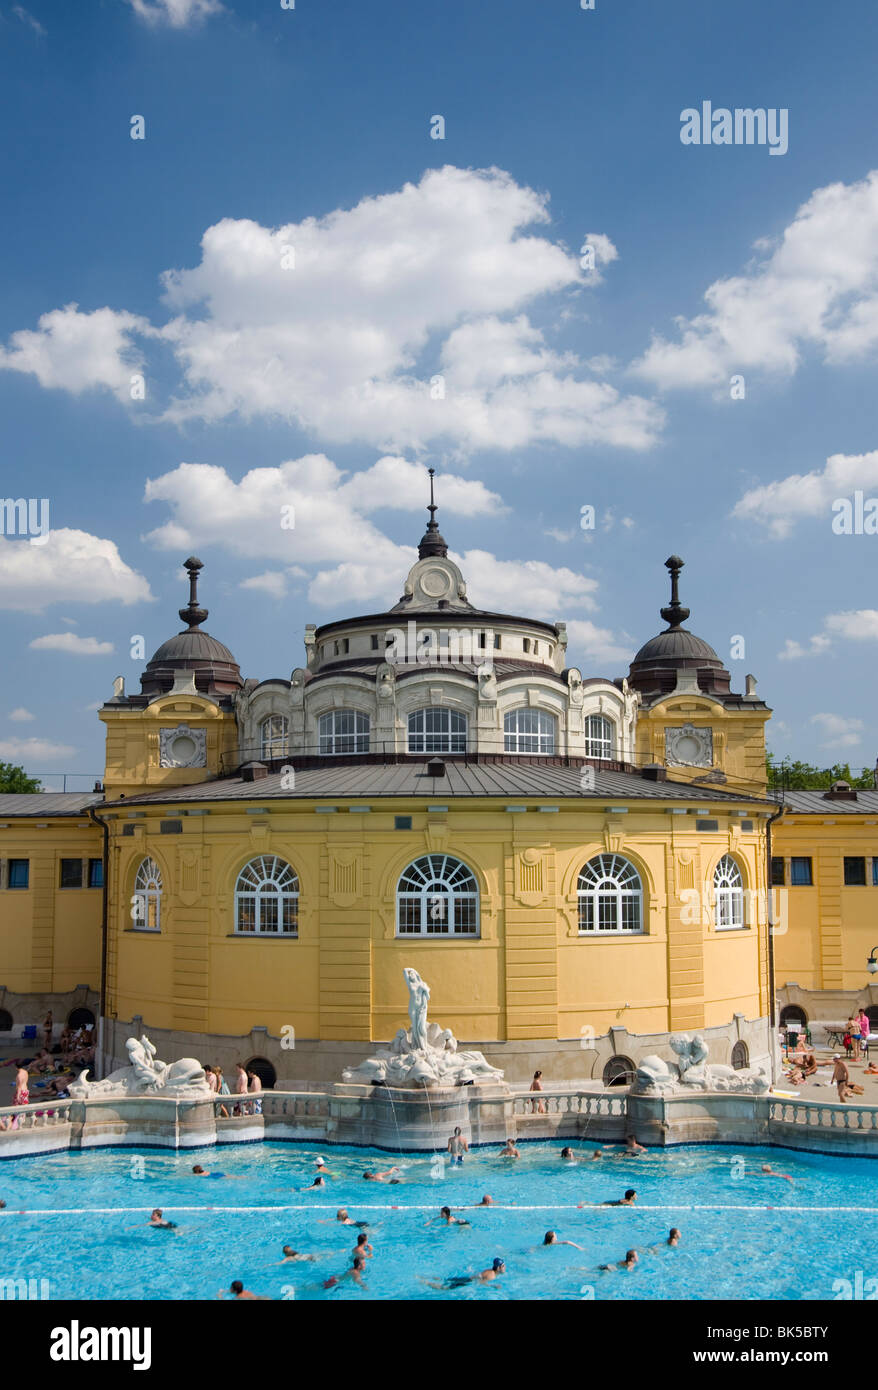 The Szechenyi Baths, Budapest, Hungary, Europe - Stock Image